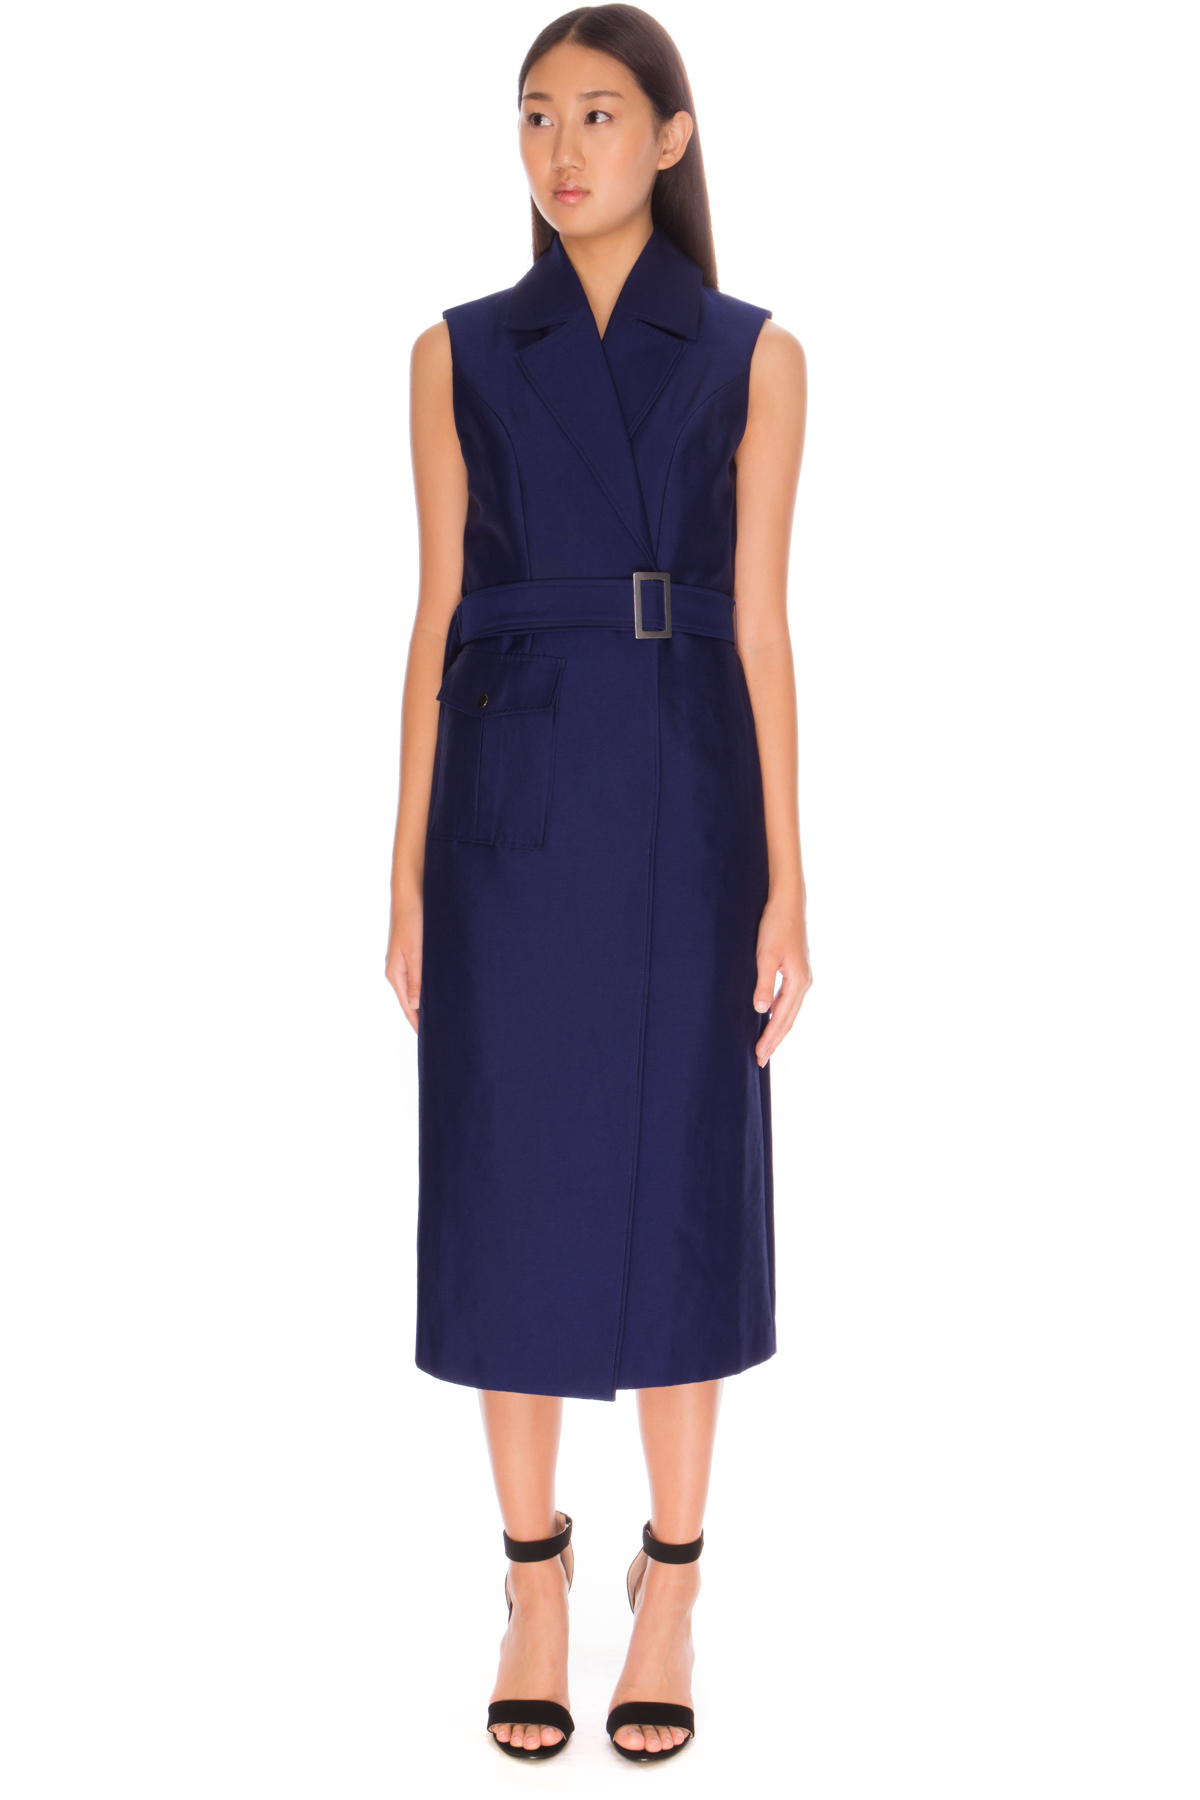 C meo collective white walls trench dress in blue lyst for C meo bedroom wall dress